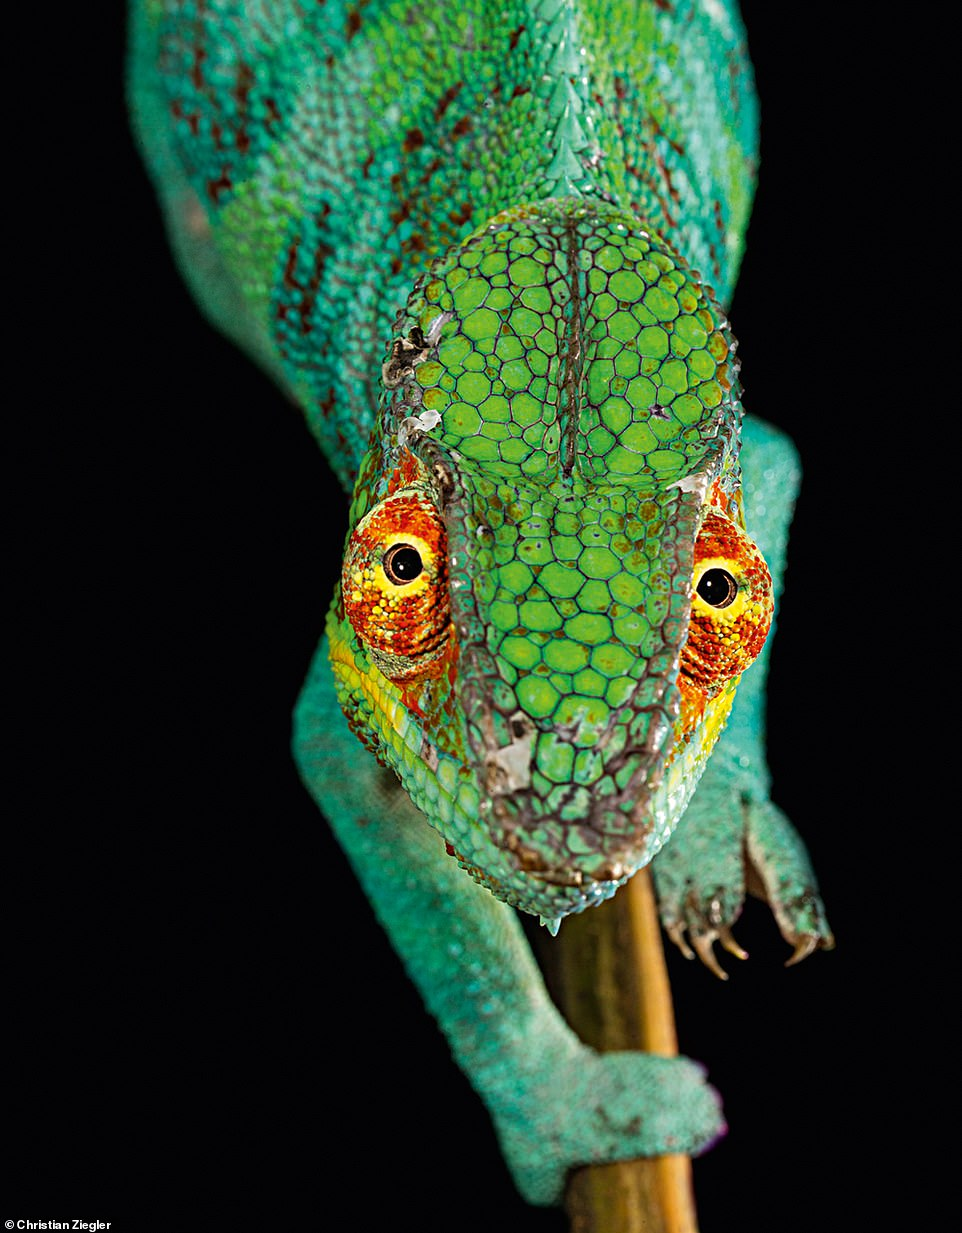 According to Ziegler, the blue morphotype of panther chameleon that's pictured in this stunning image is very rare in the wild due to exploitation by the exotic pet trade. The book explains how this particular species isendemic to the area around Ambanja, a city in northern Madagascar